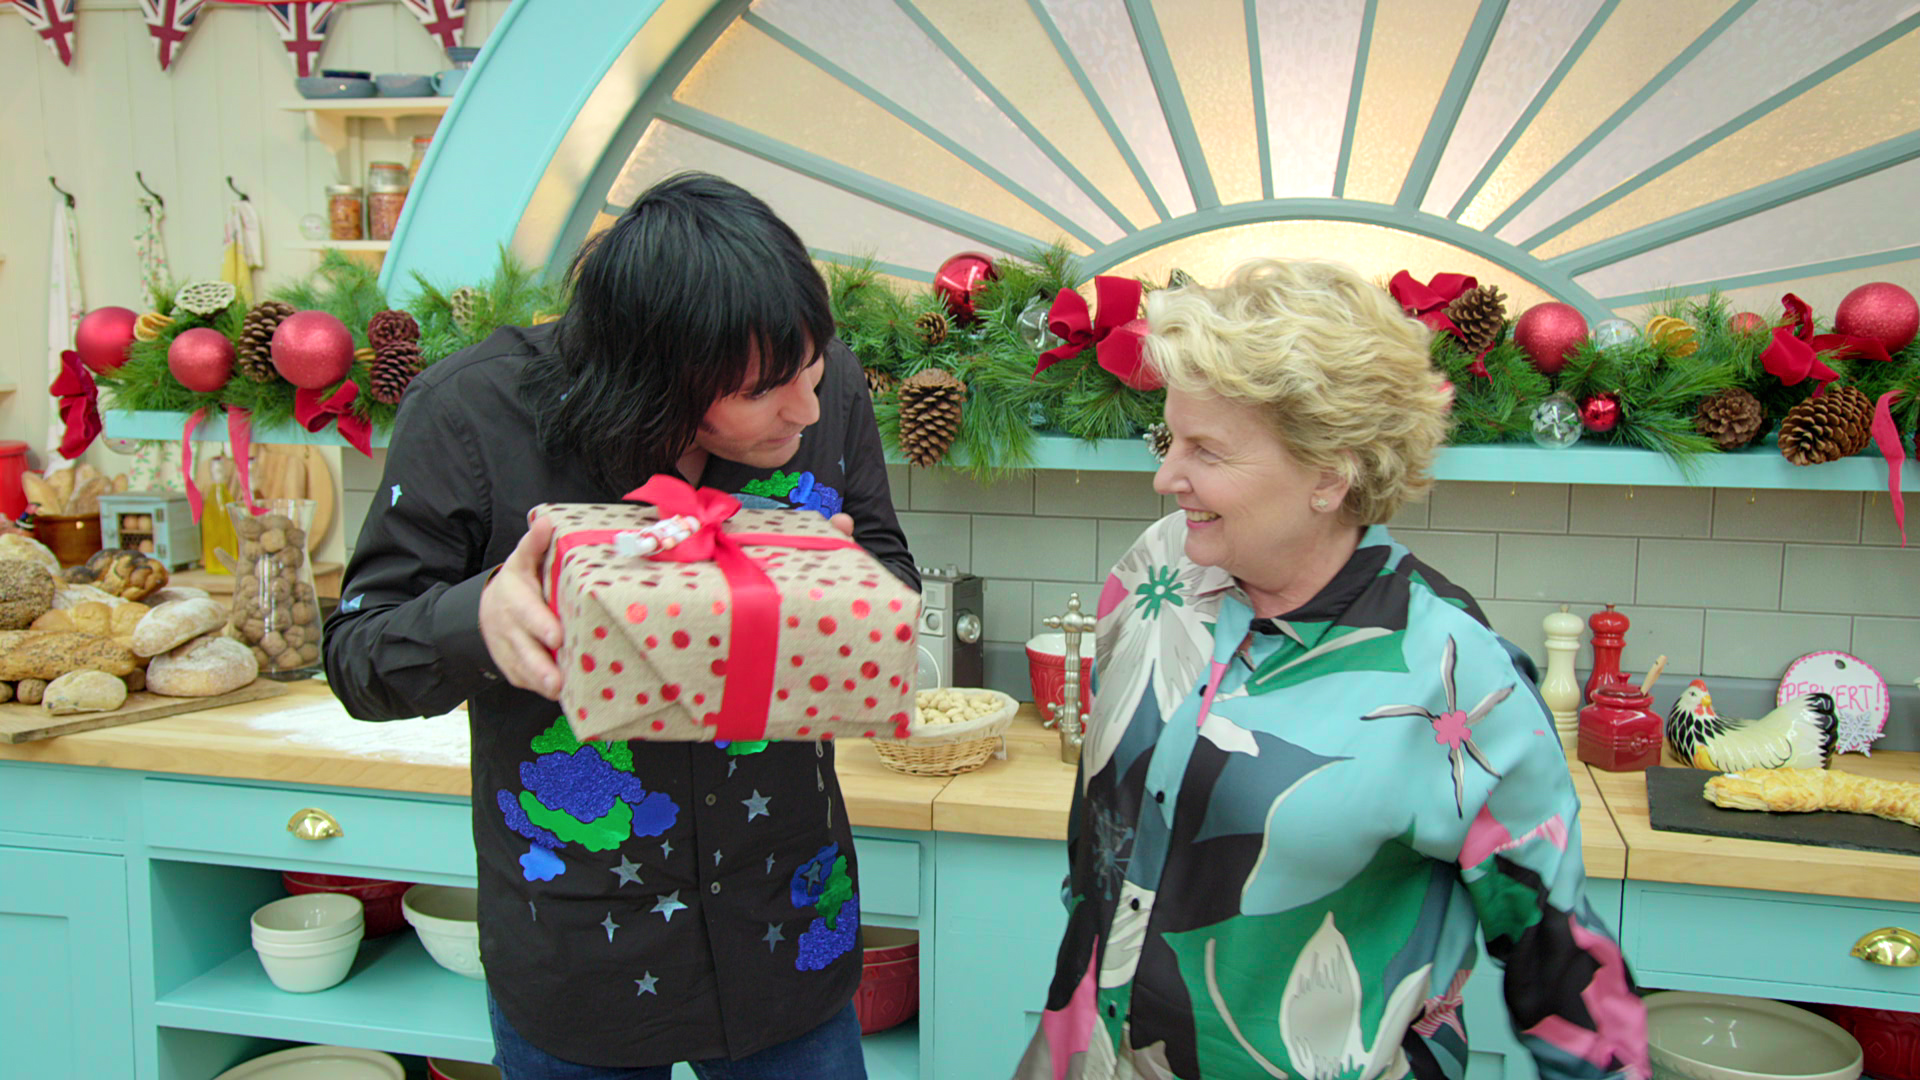 Noel Fielding and Sandi Toksvig in The Great British Bake Off (2010)